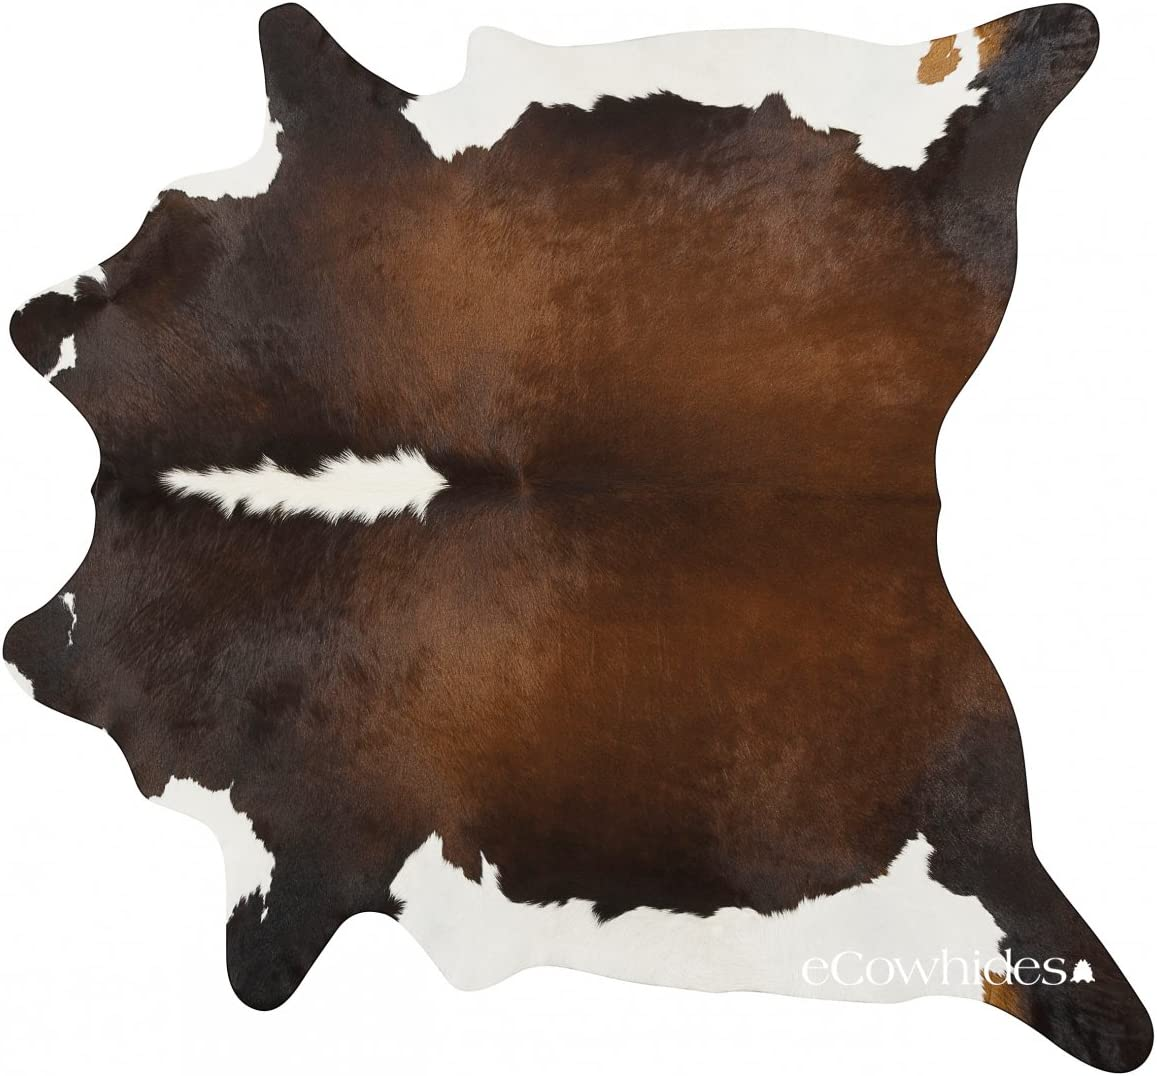 eCowhides Chocolate and White Brazilian Cowhide Area Rug, Cowskin Leather Hide for Home Living Room Large 6 x 6 ft